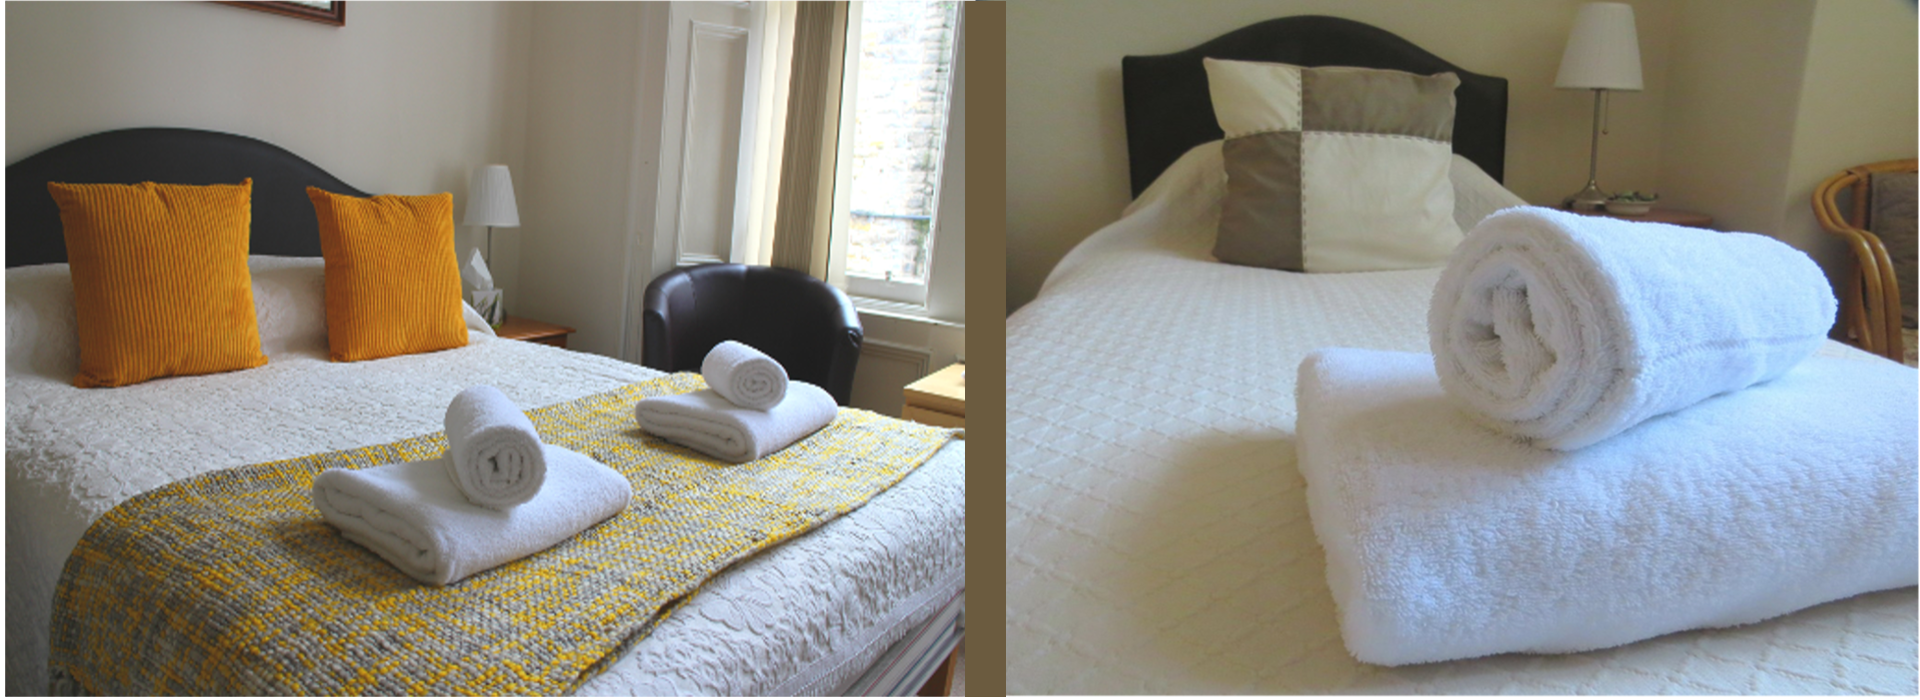 make yourself comfortable at craigmore guest house in st andrews